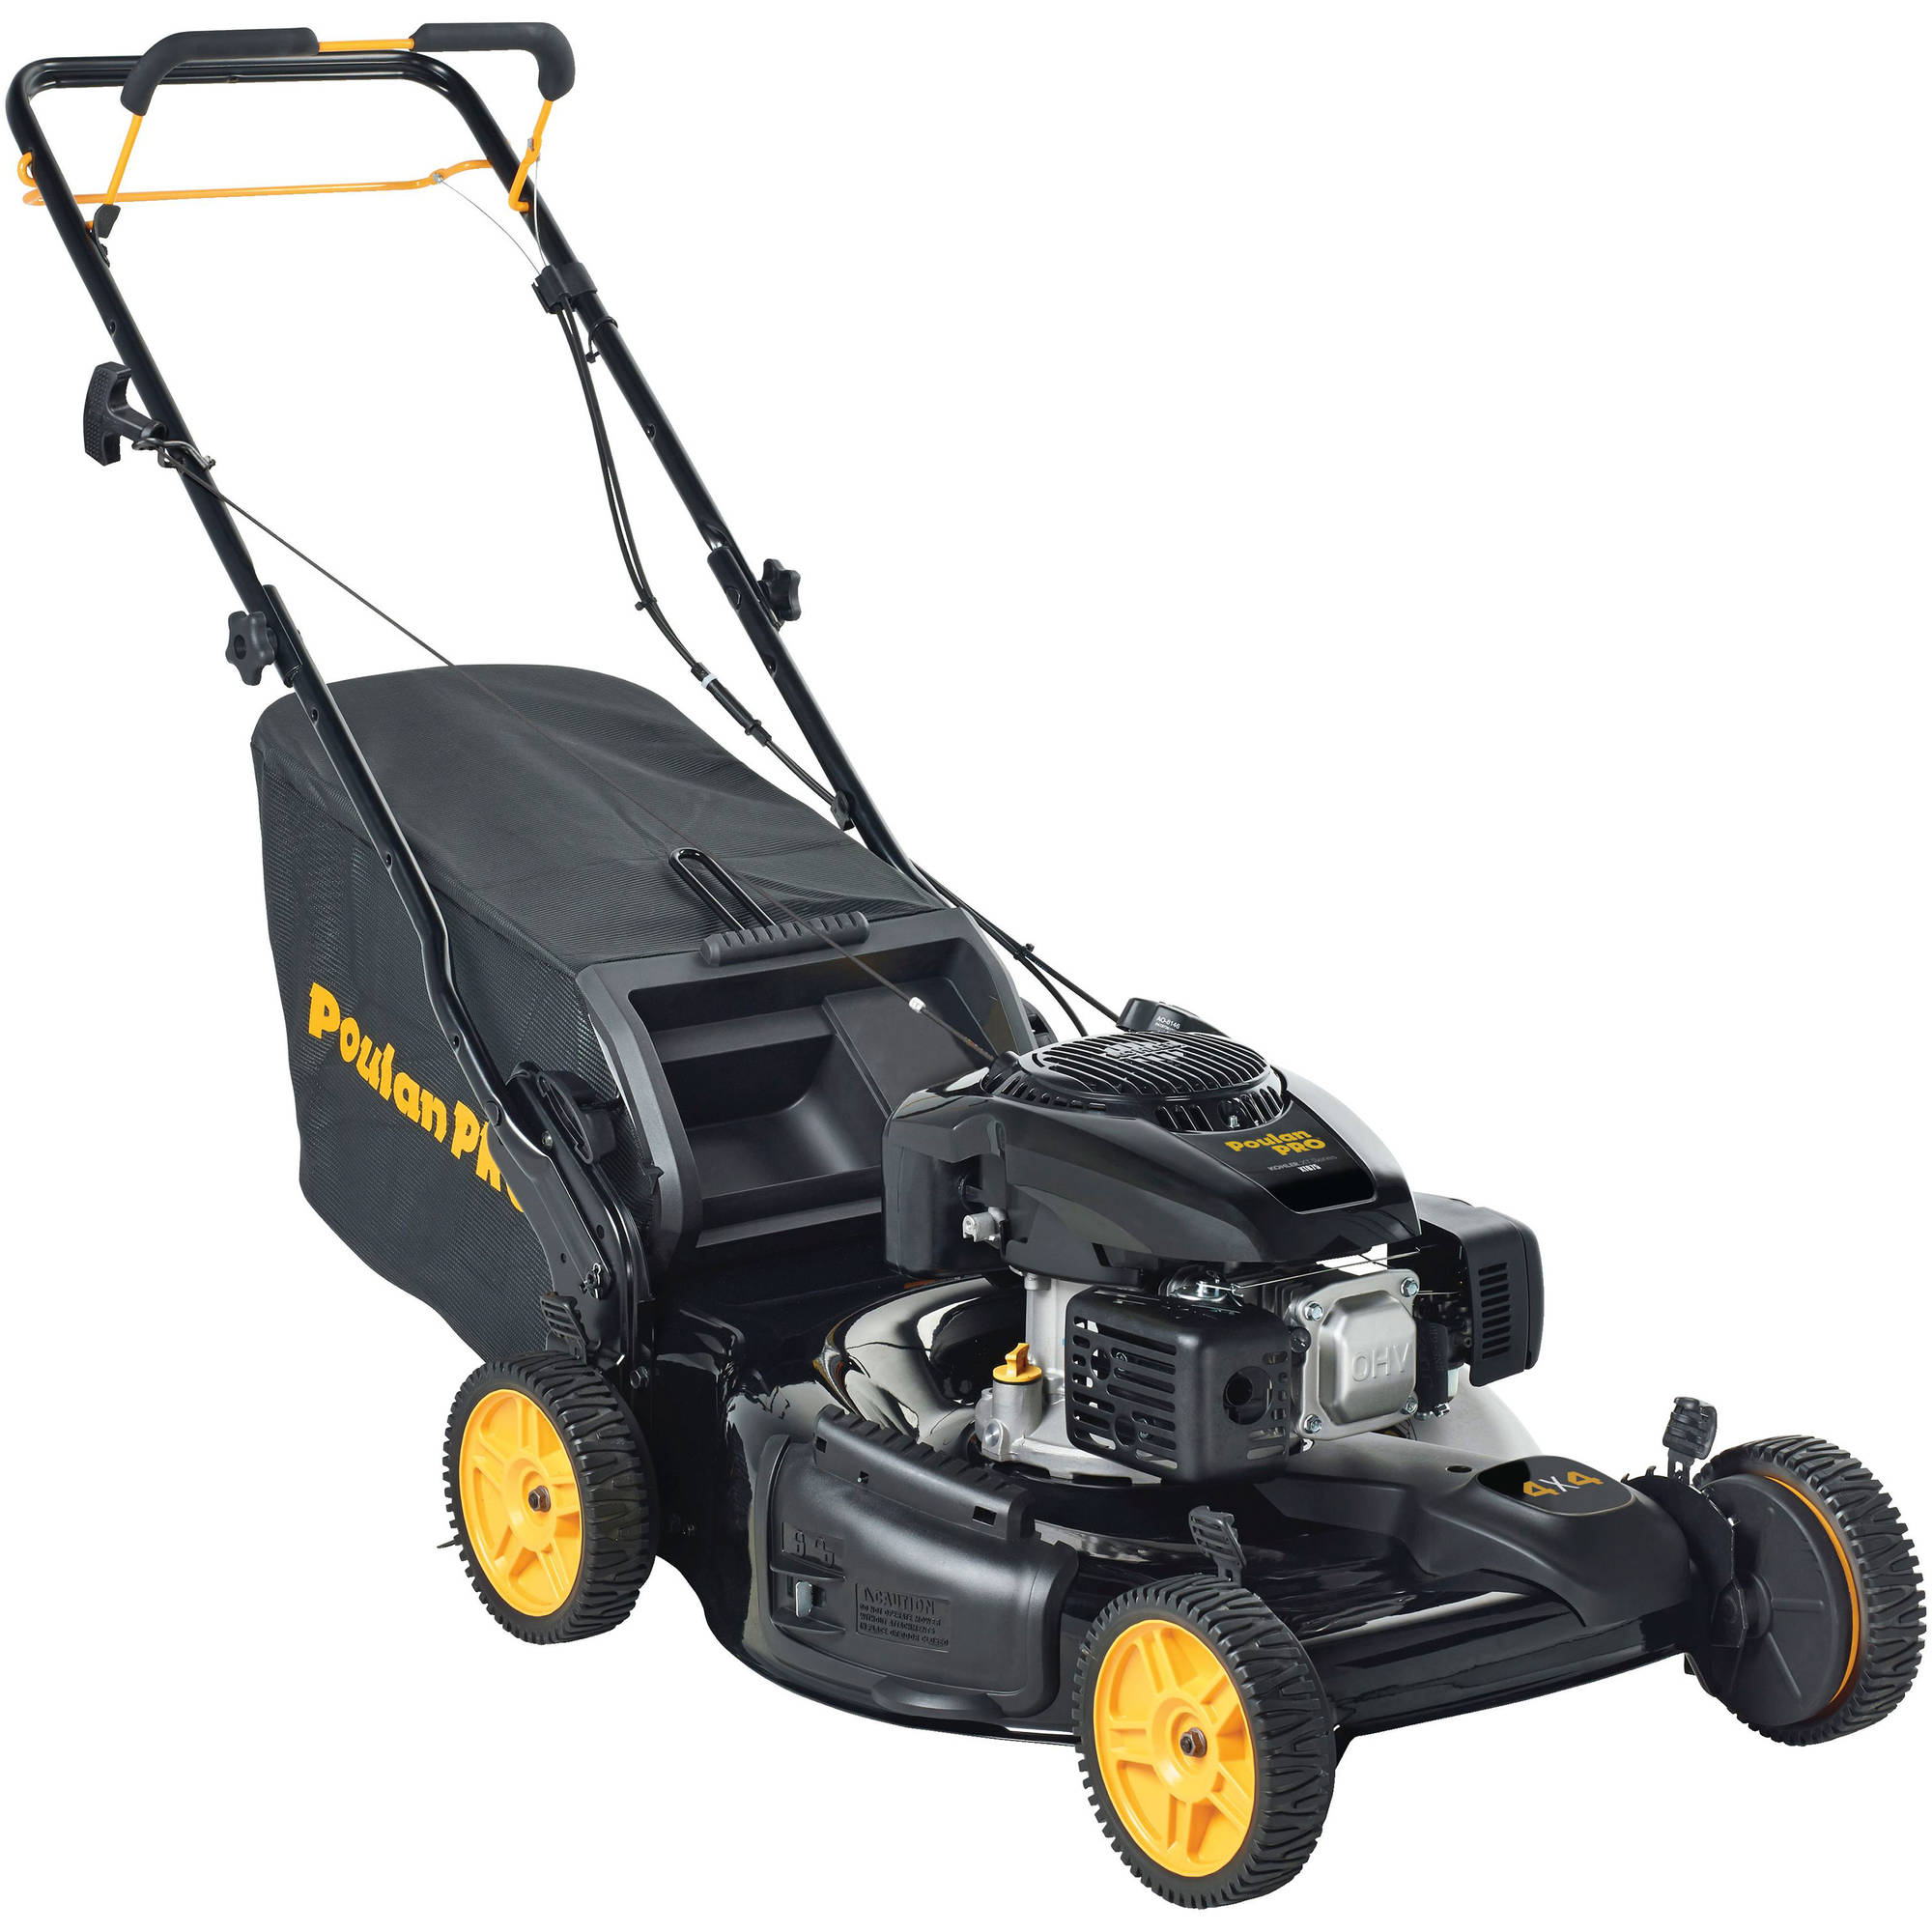 "Poulan Pro 21"" AWD Gas Lawn Mower w Side Discharge, Mulching & Bagging by Husqvarna"